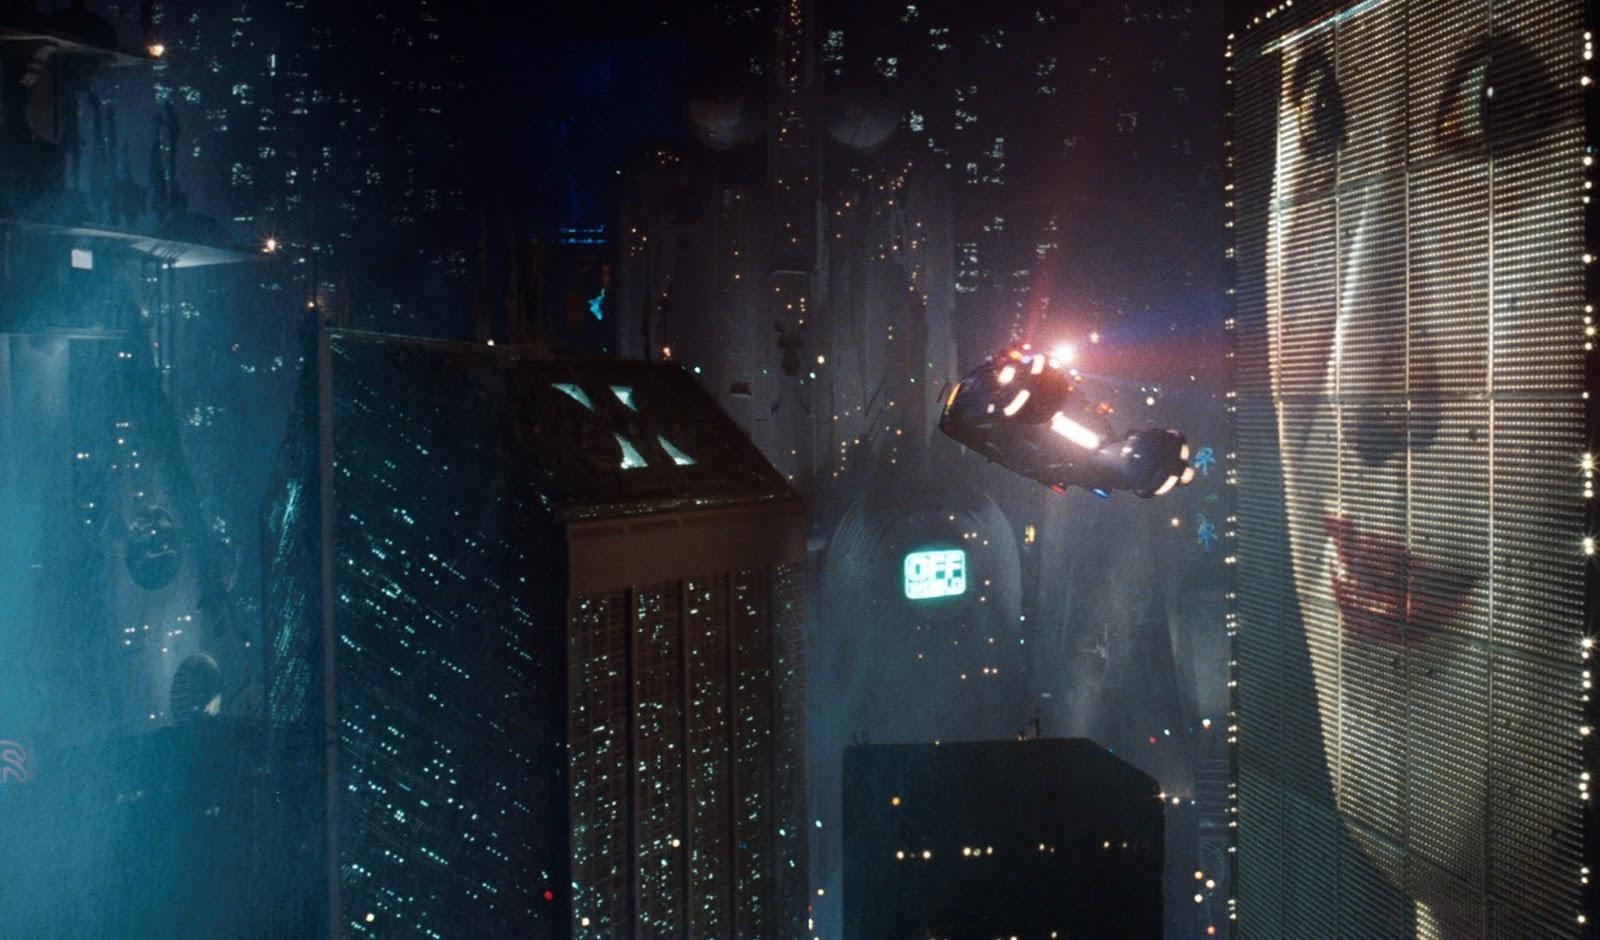 Spinners in the sky in Blade Runner (1982)